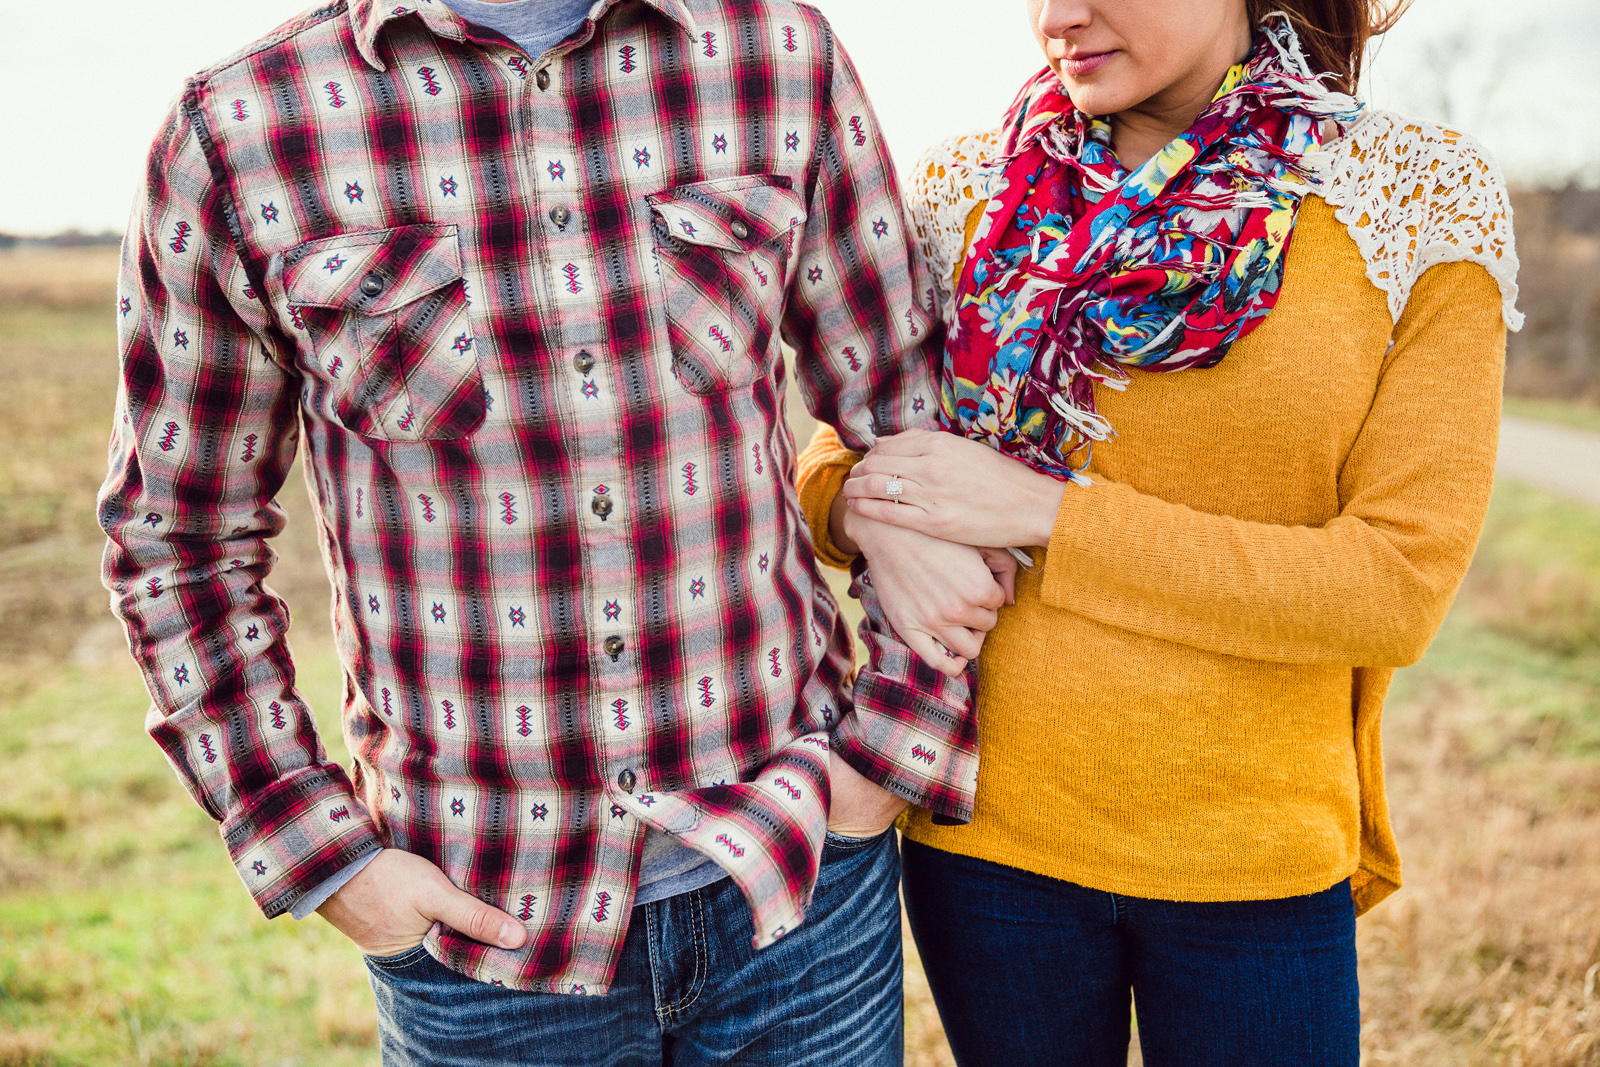 Oldani-Photography-St-Charles-August-A-Busch-Memorial-Area-Engagement-Session-engagement-photos_20141128_160124-2.jpg